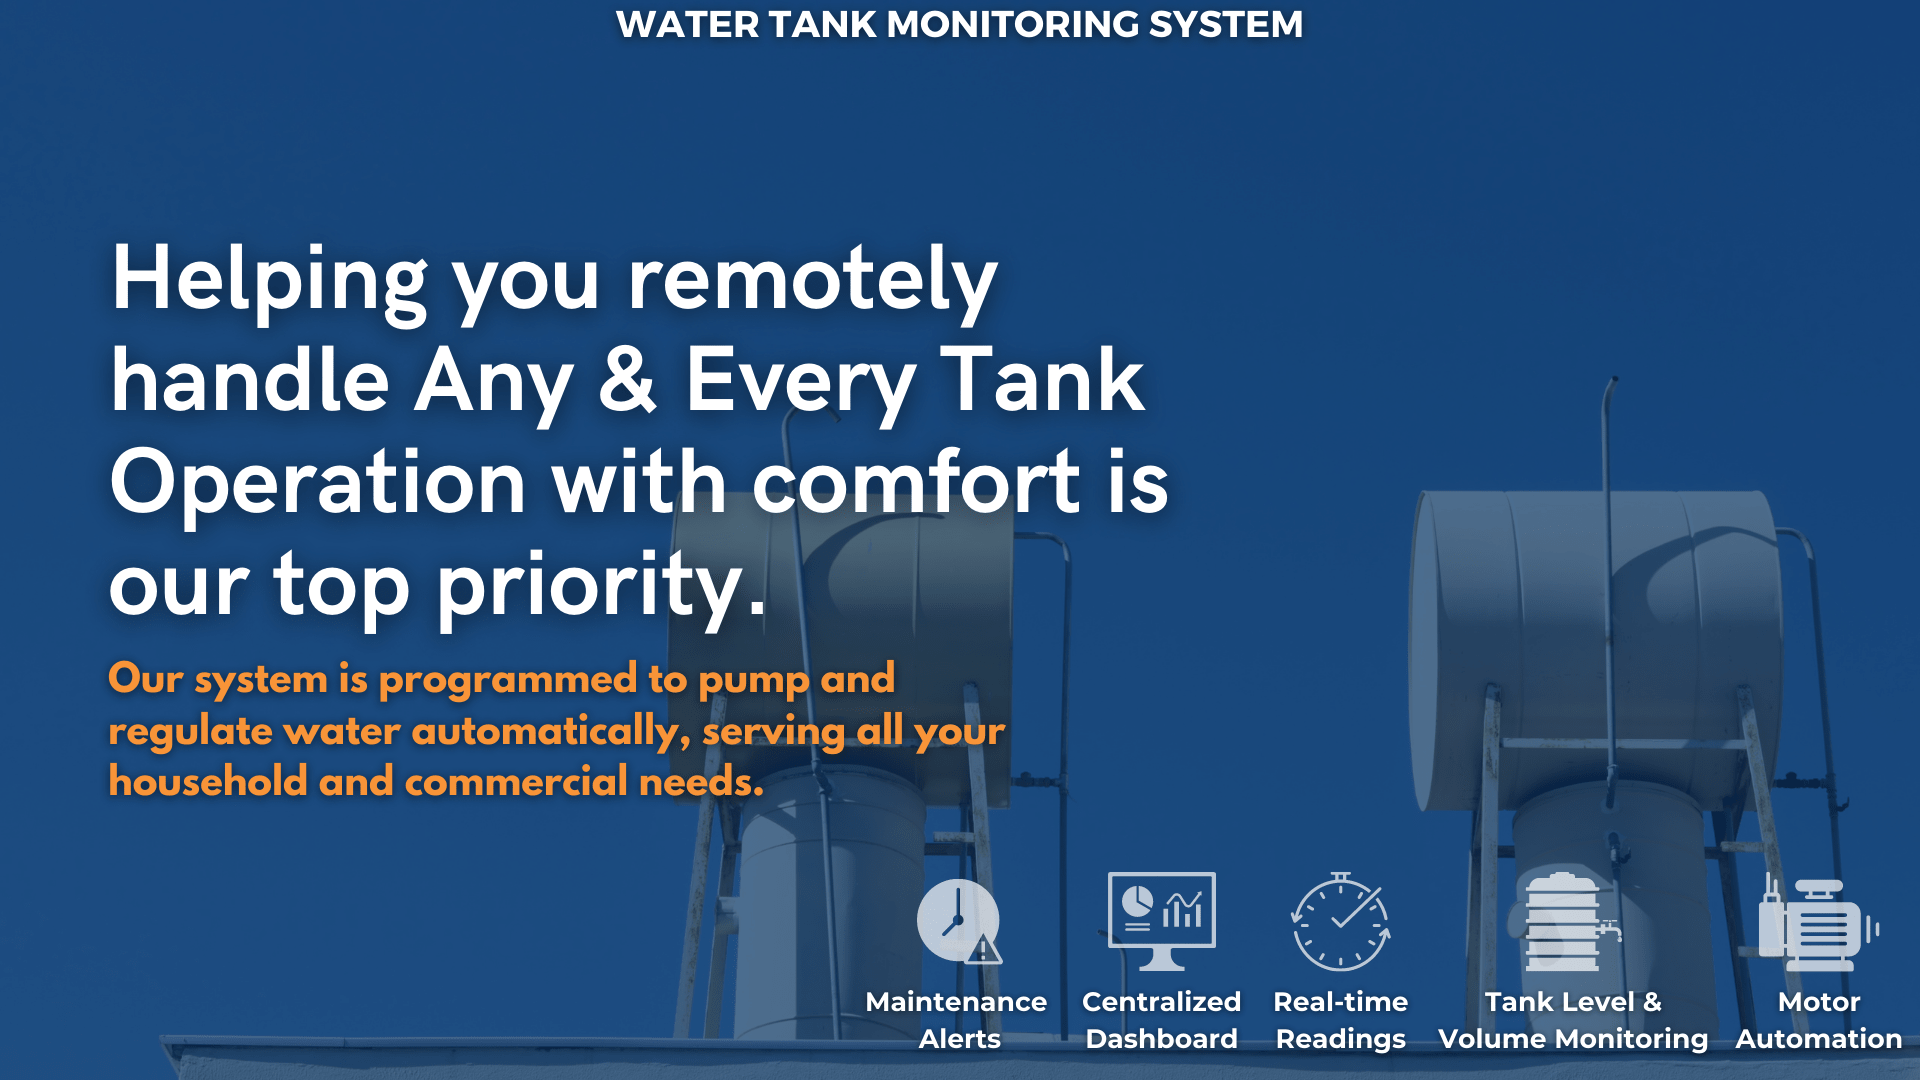 Water Tank Monitoring System 1-min